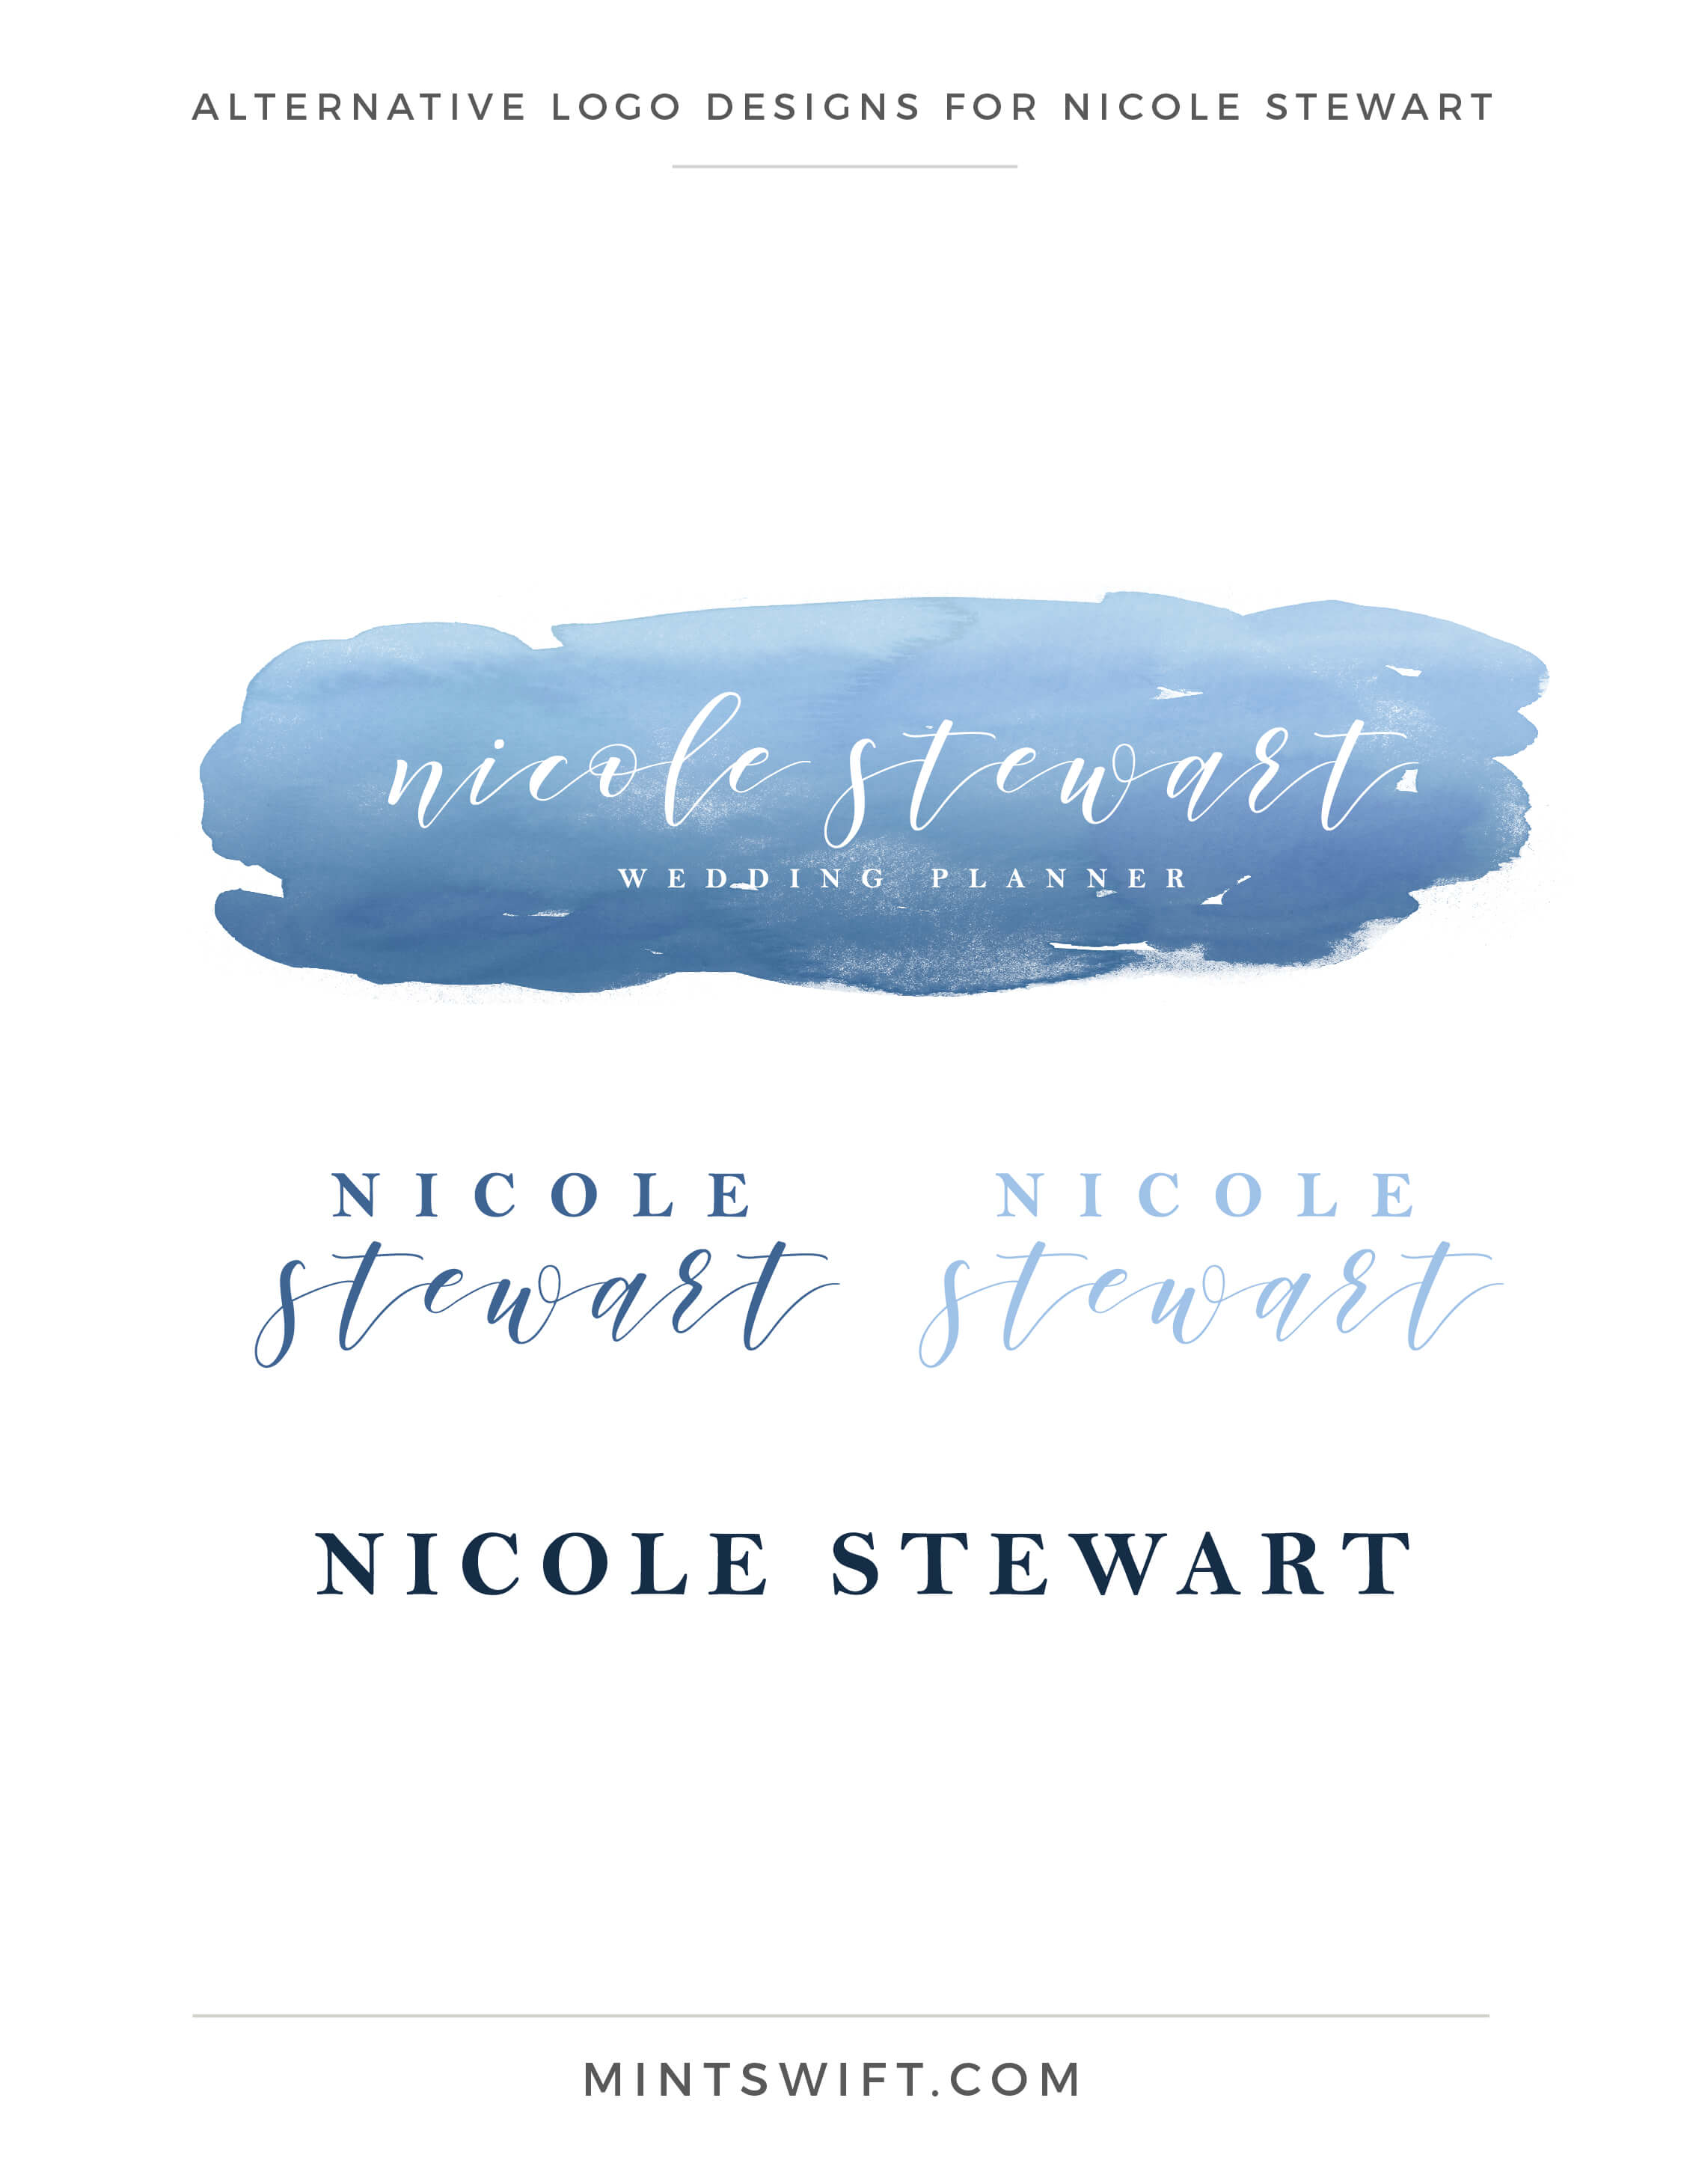 Nicole Stewart - Alternative Logo Designs - Brand Design Package - MintSwift